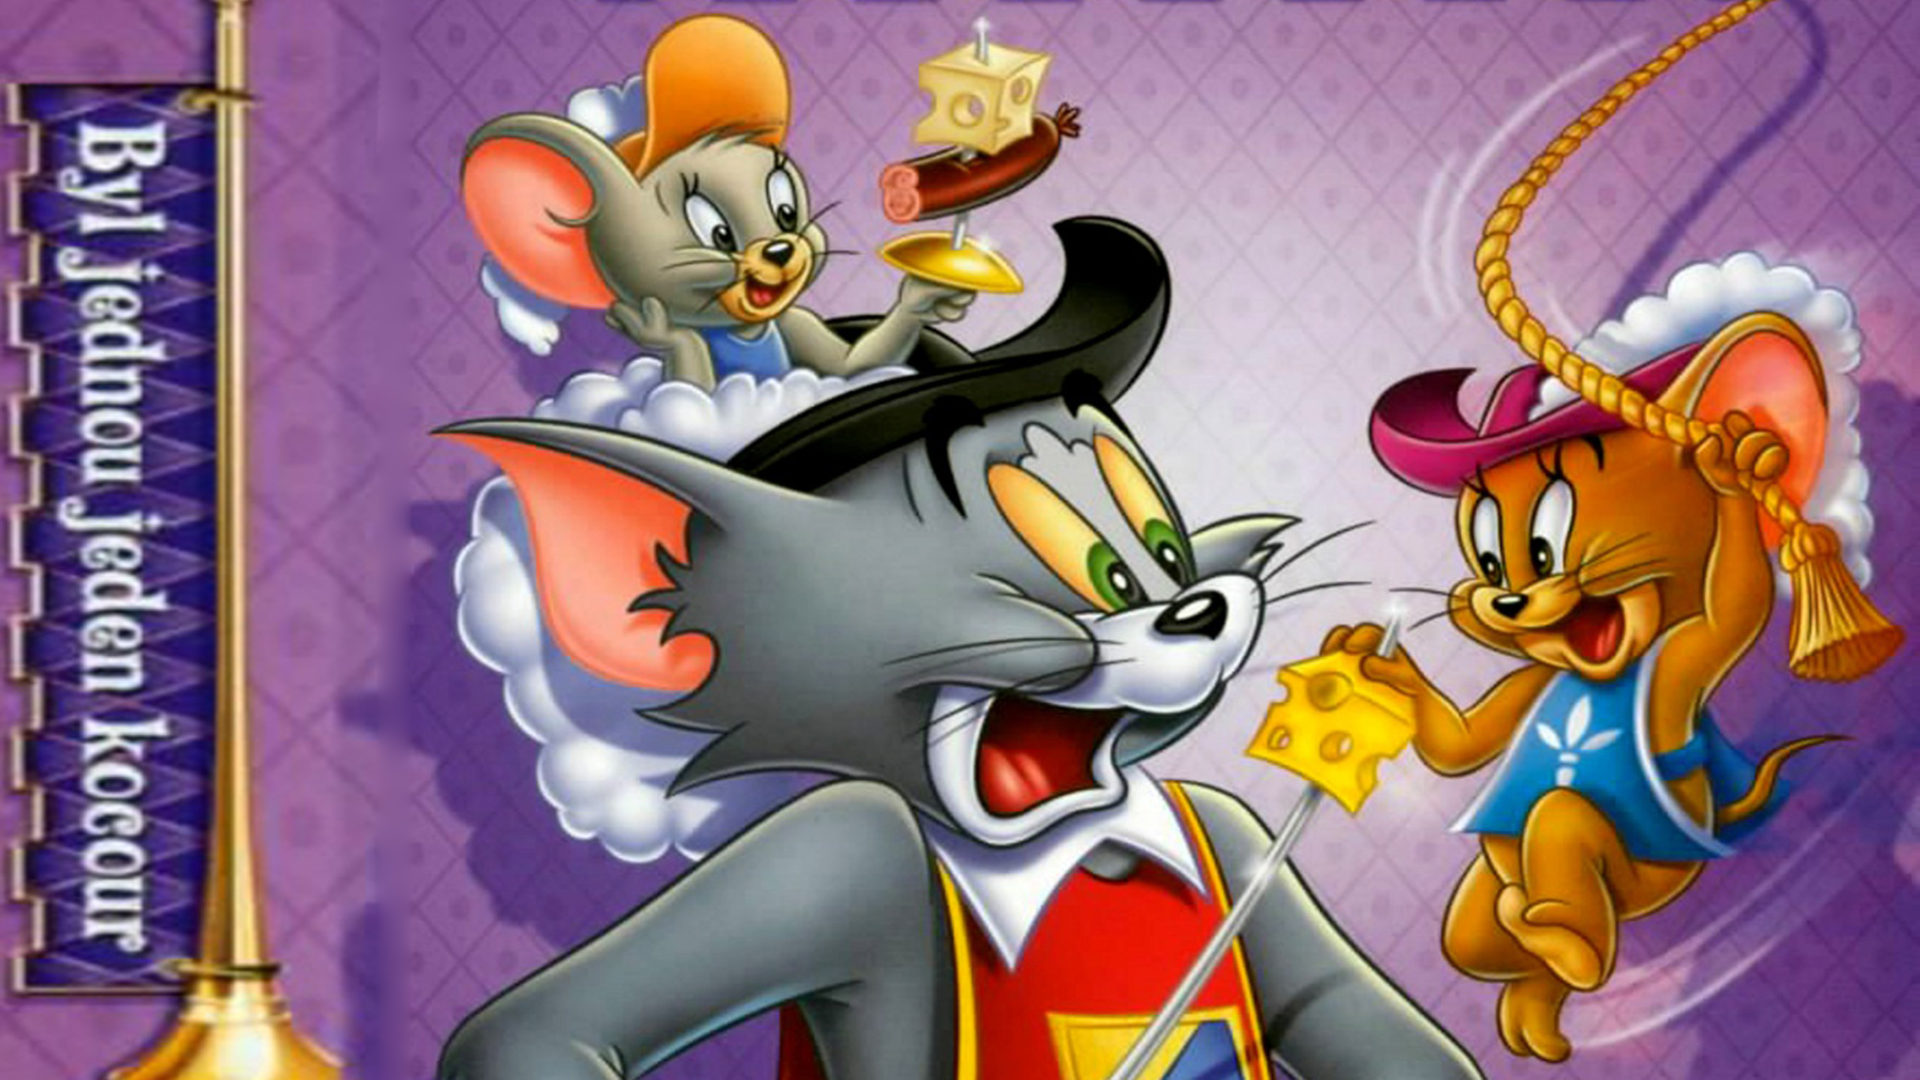 Cute Anime Lock Screen Wallpaper Tom Jerry Once Upon A Tomcat Wallpapers Hd 2560x1600